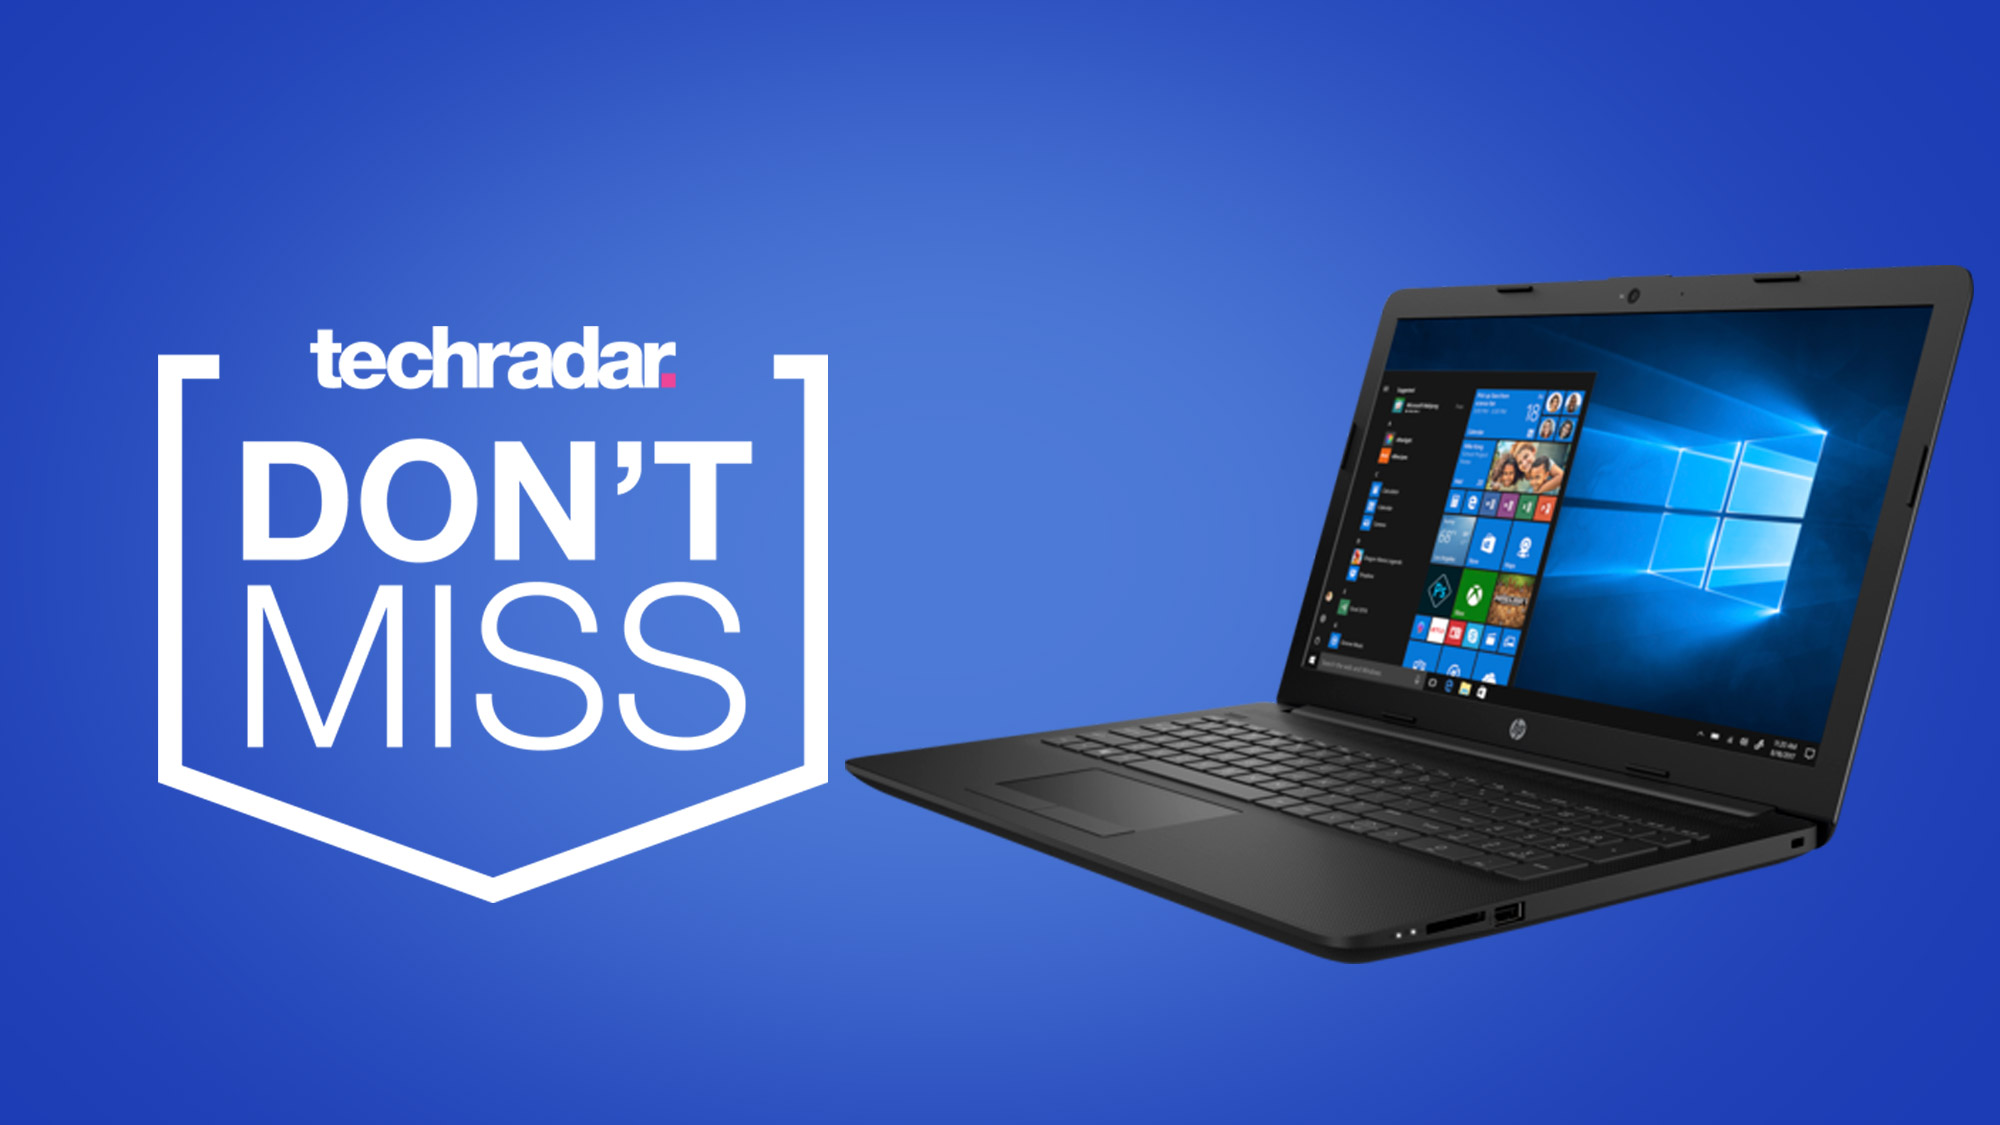 HP's 4th of July sale: deals on laptops, monitors, printers, and more thumbnail